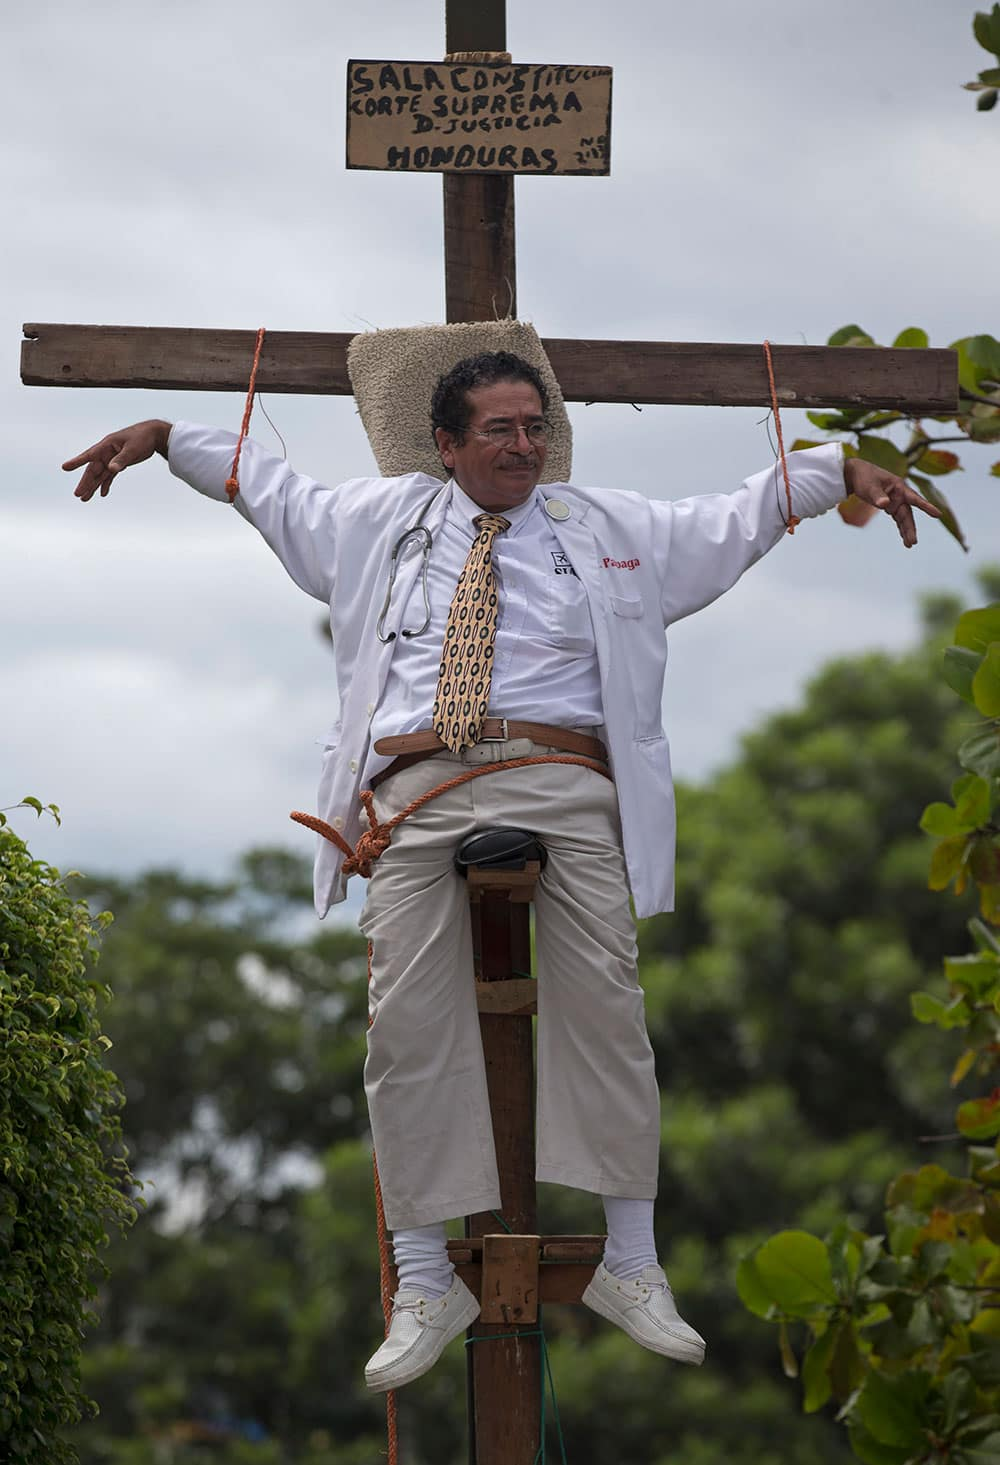 Francisco Pagoada hangs from a cross, with some support, as part of his protest against the Supreme Court that denied Pagoada`s request to run as an independent candidate for mayor, in Tegucigalpa, Honduras.